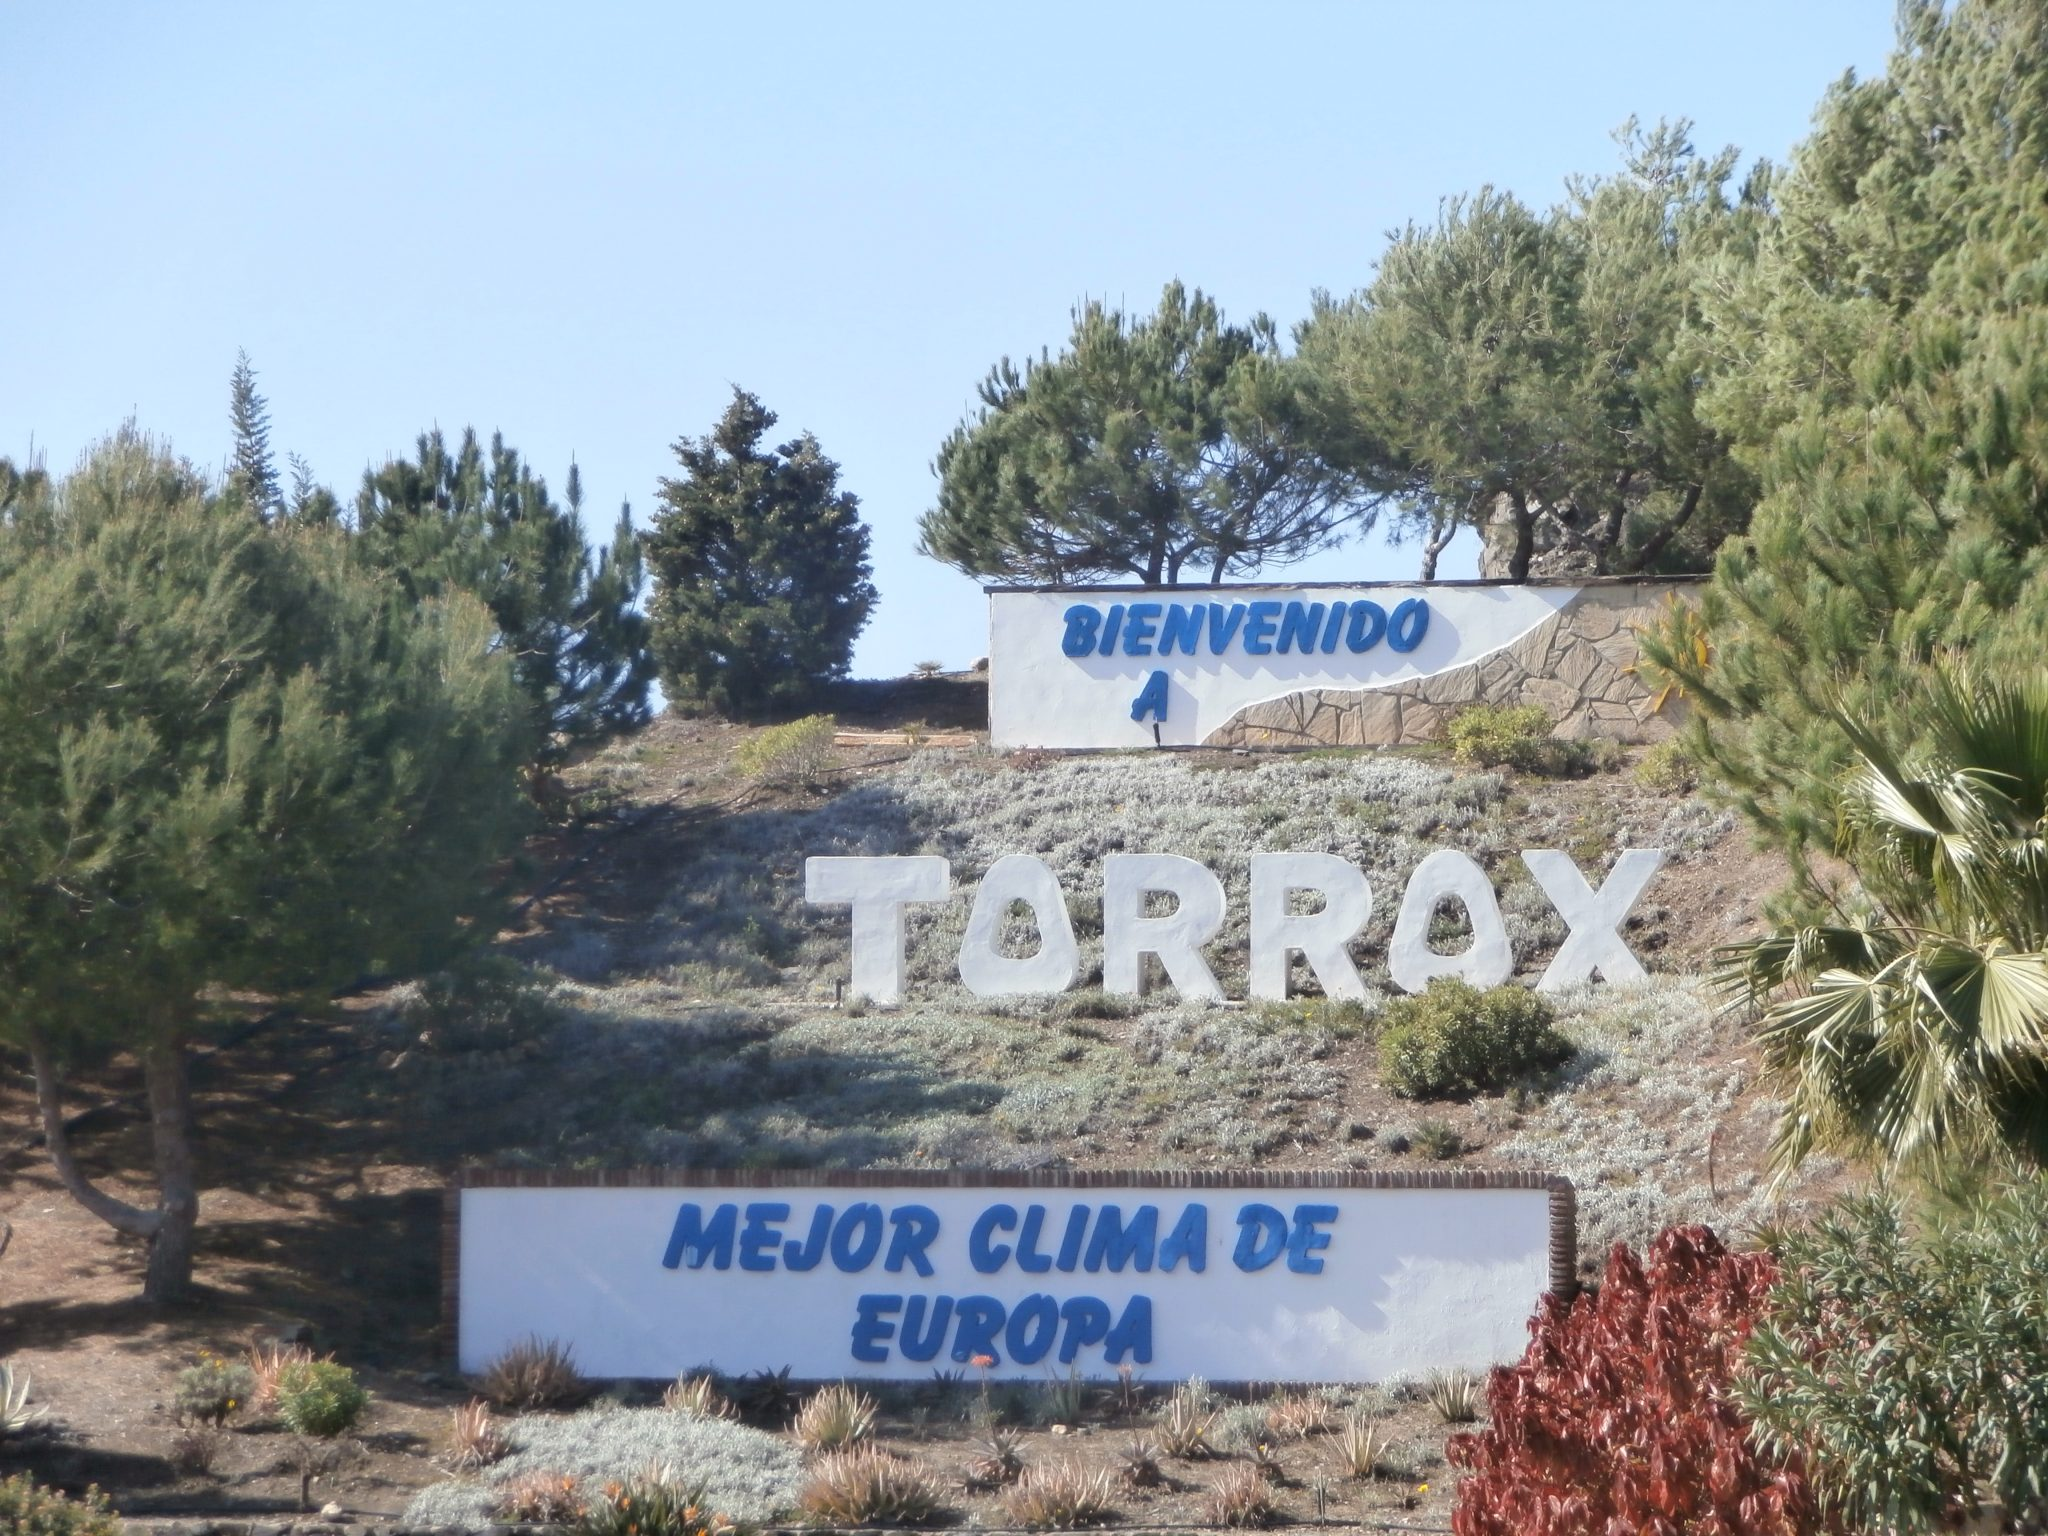 Torrox enjoys the best climate in Europe!